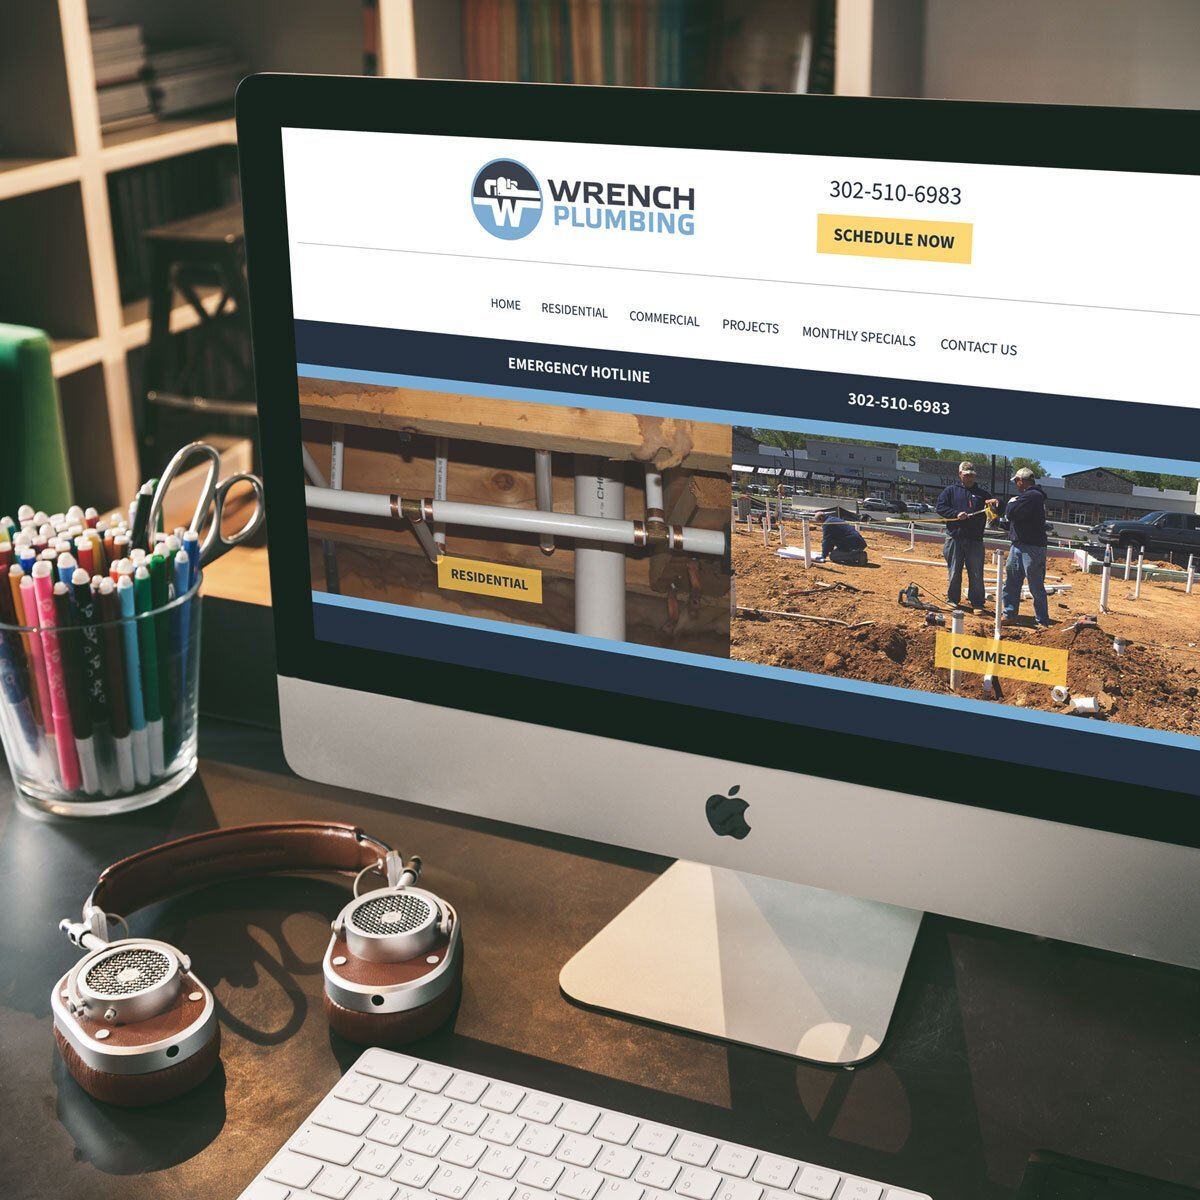 Wrench Plumbing Web Design by BrandSwan, a web design company